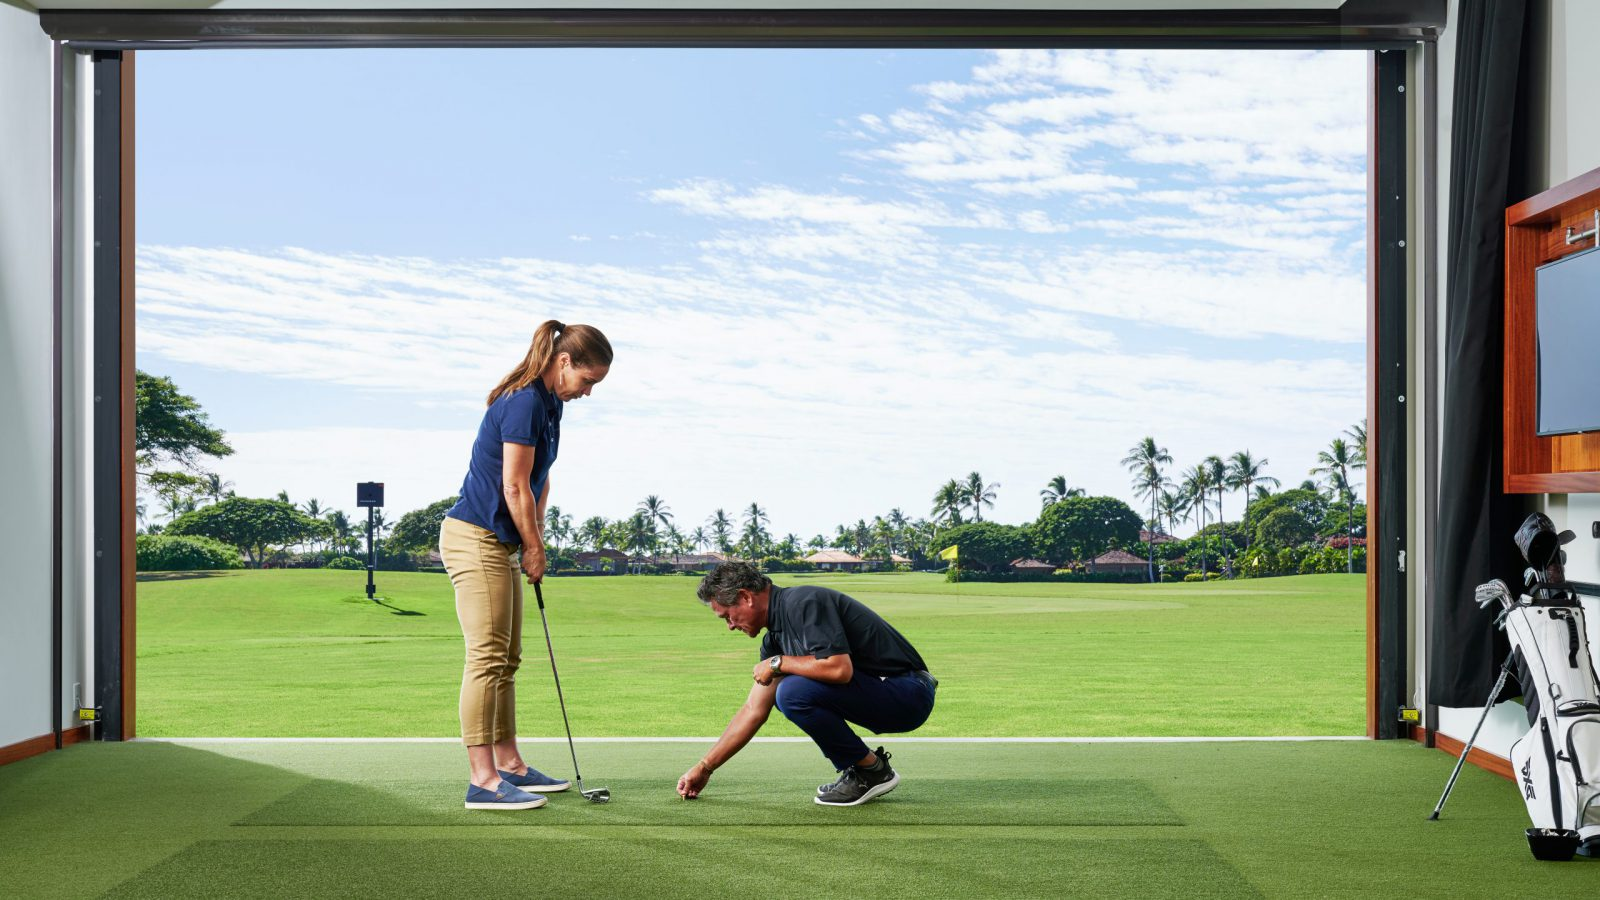 An instructor places a tee on the indoor golf turf while the person taking the lesson readies her swing.